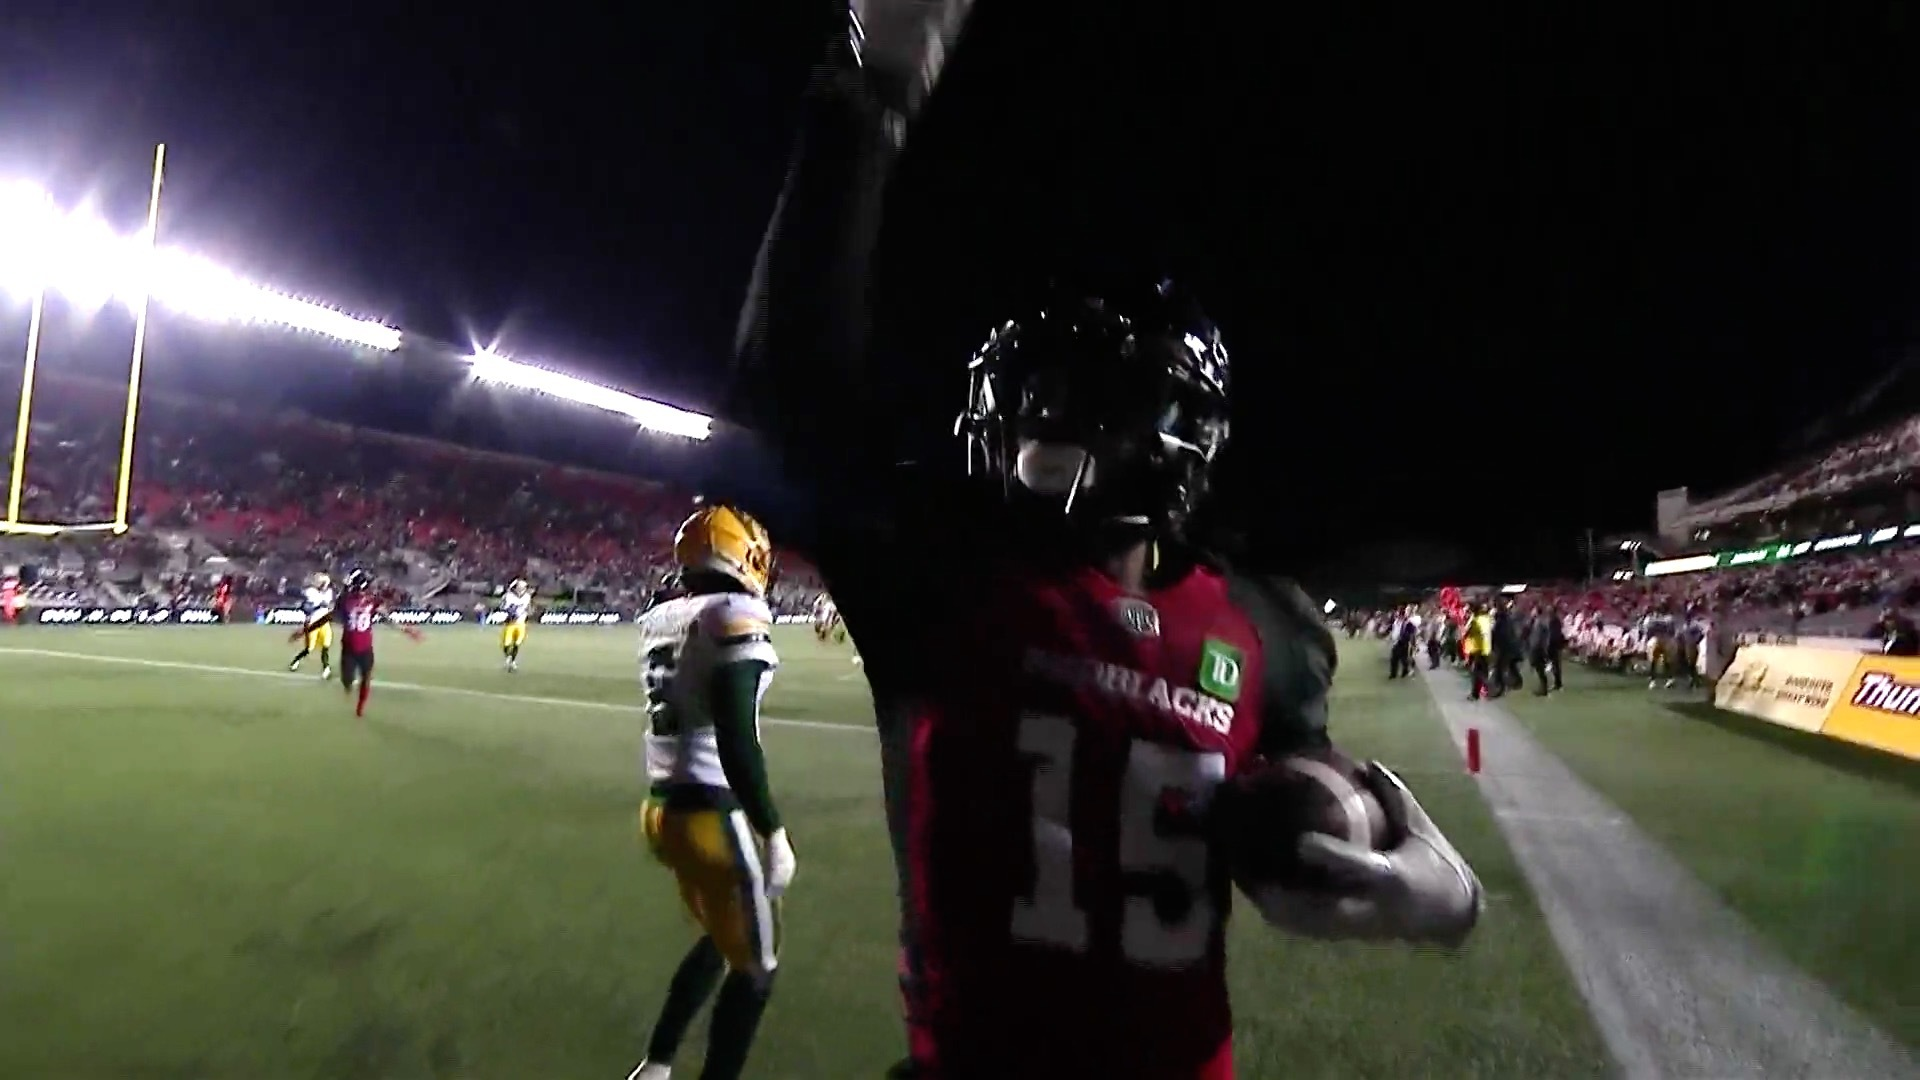 Evans connects for first TD after trick play